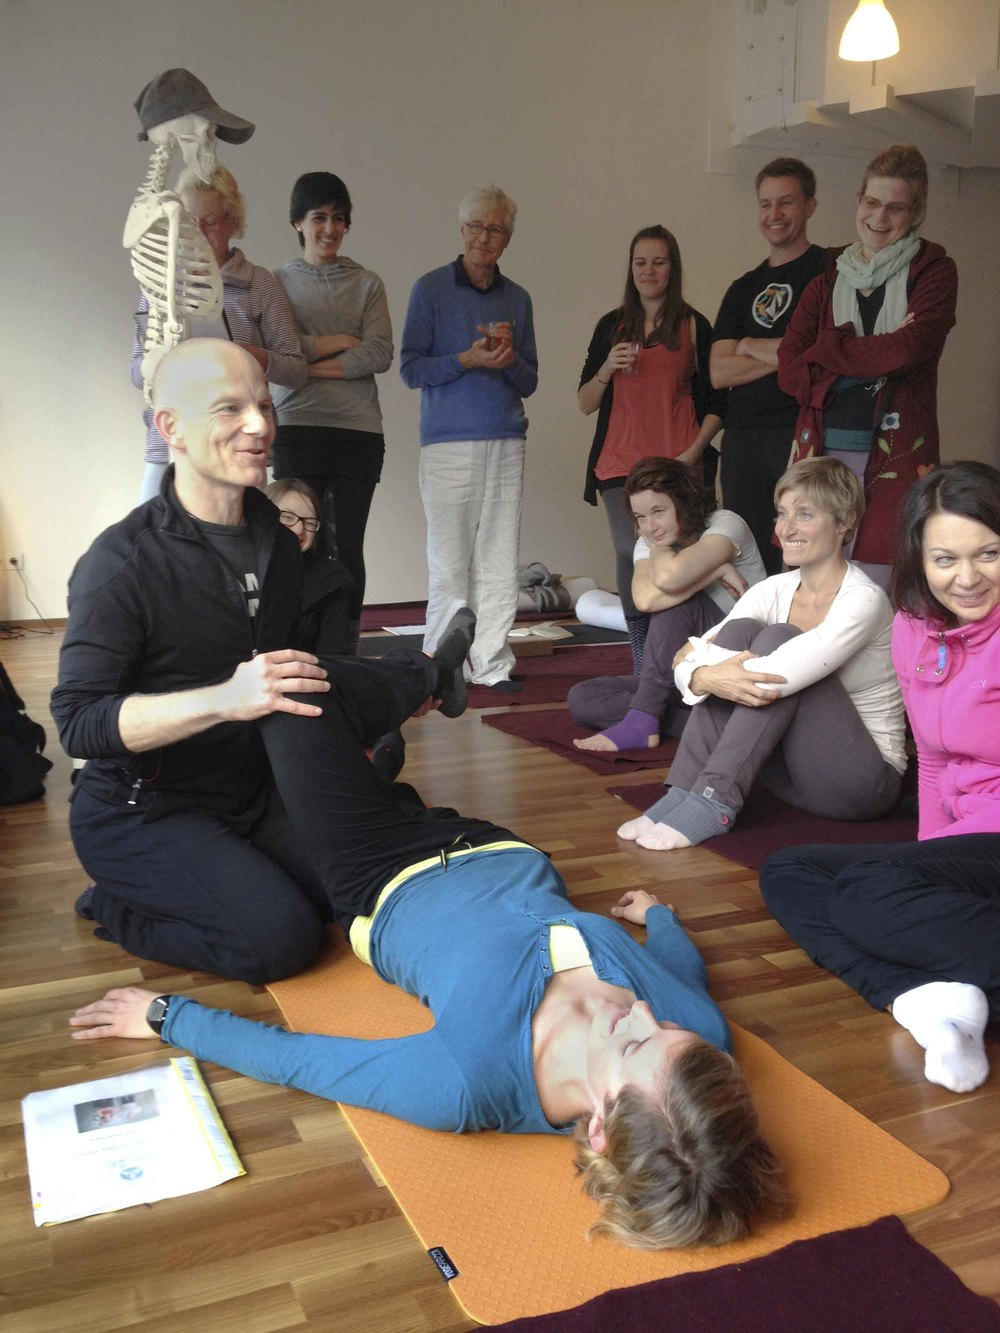 Yin Therapy - Yin Yoga & Anatomie Workshop - externe Rotation